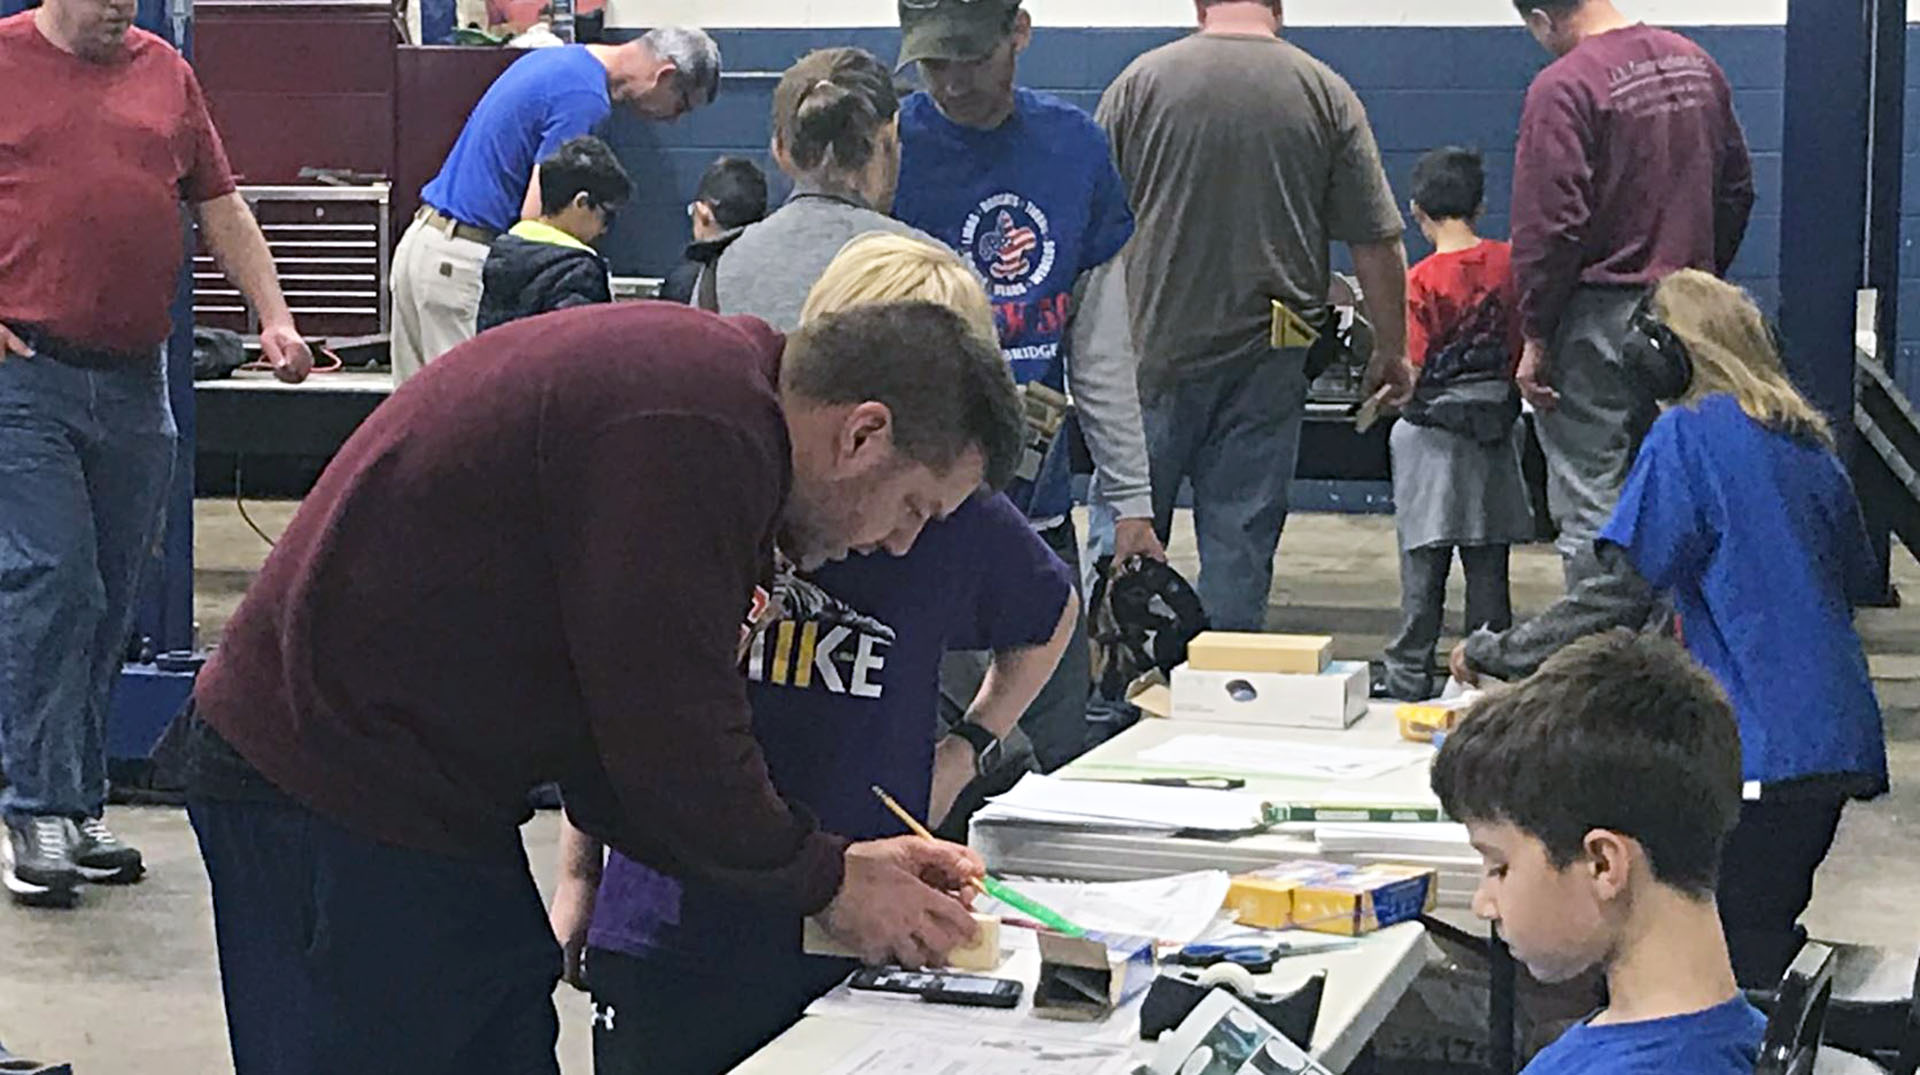 Pinewood Derby workshop offered for scouts